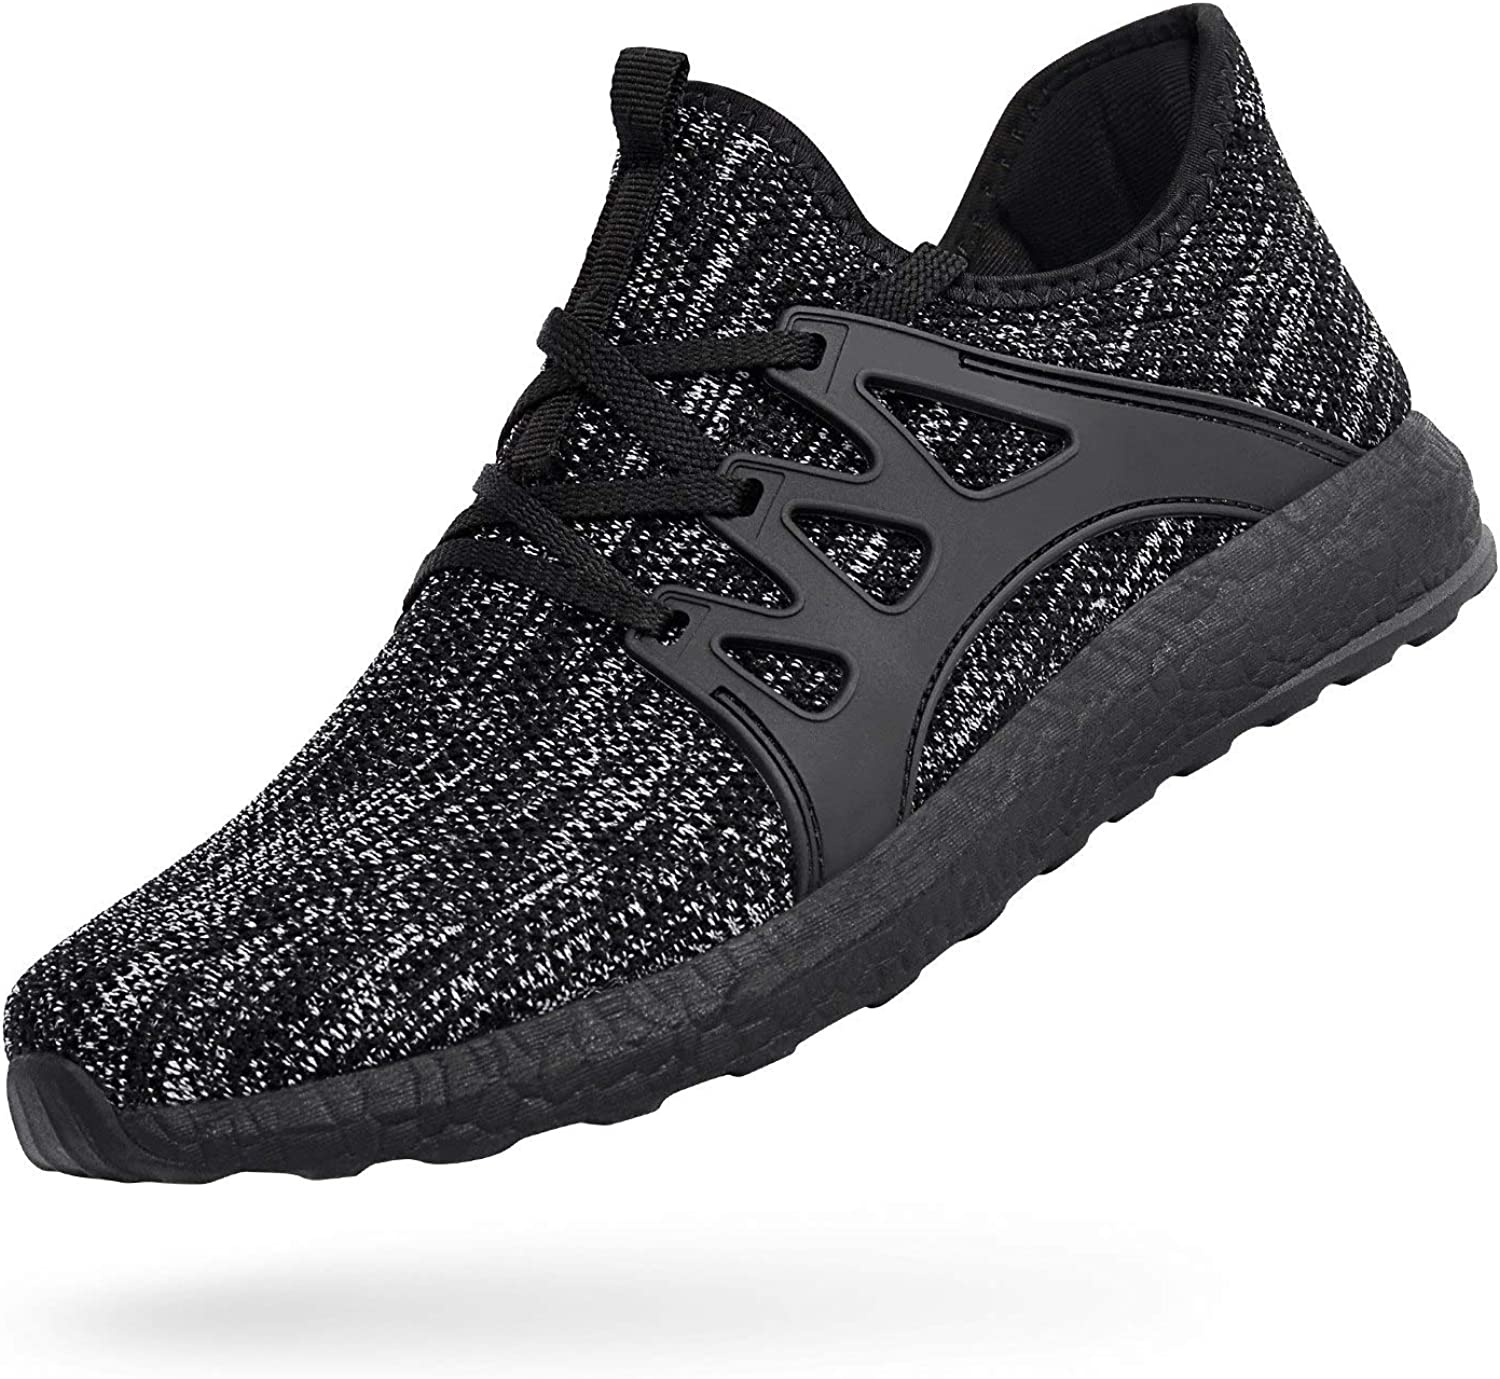 MARSVOVO Men's Sneakers Mesh Ultra Lightweight Breathable Athletic Running Walking Gym shoes Grey Black Size 9.5